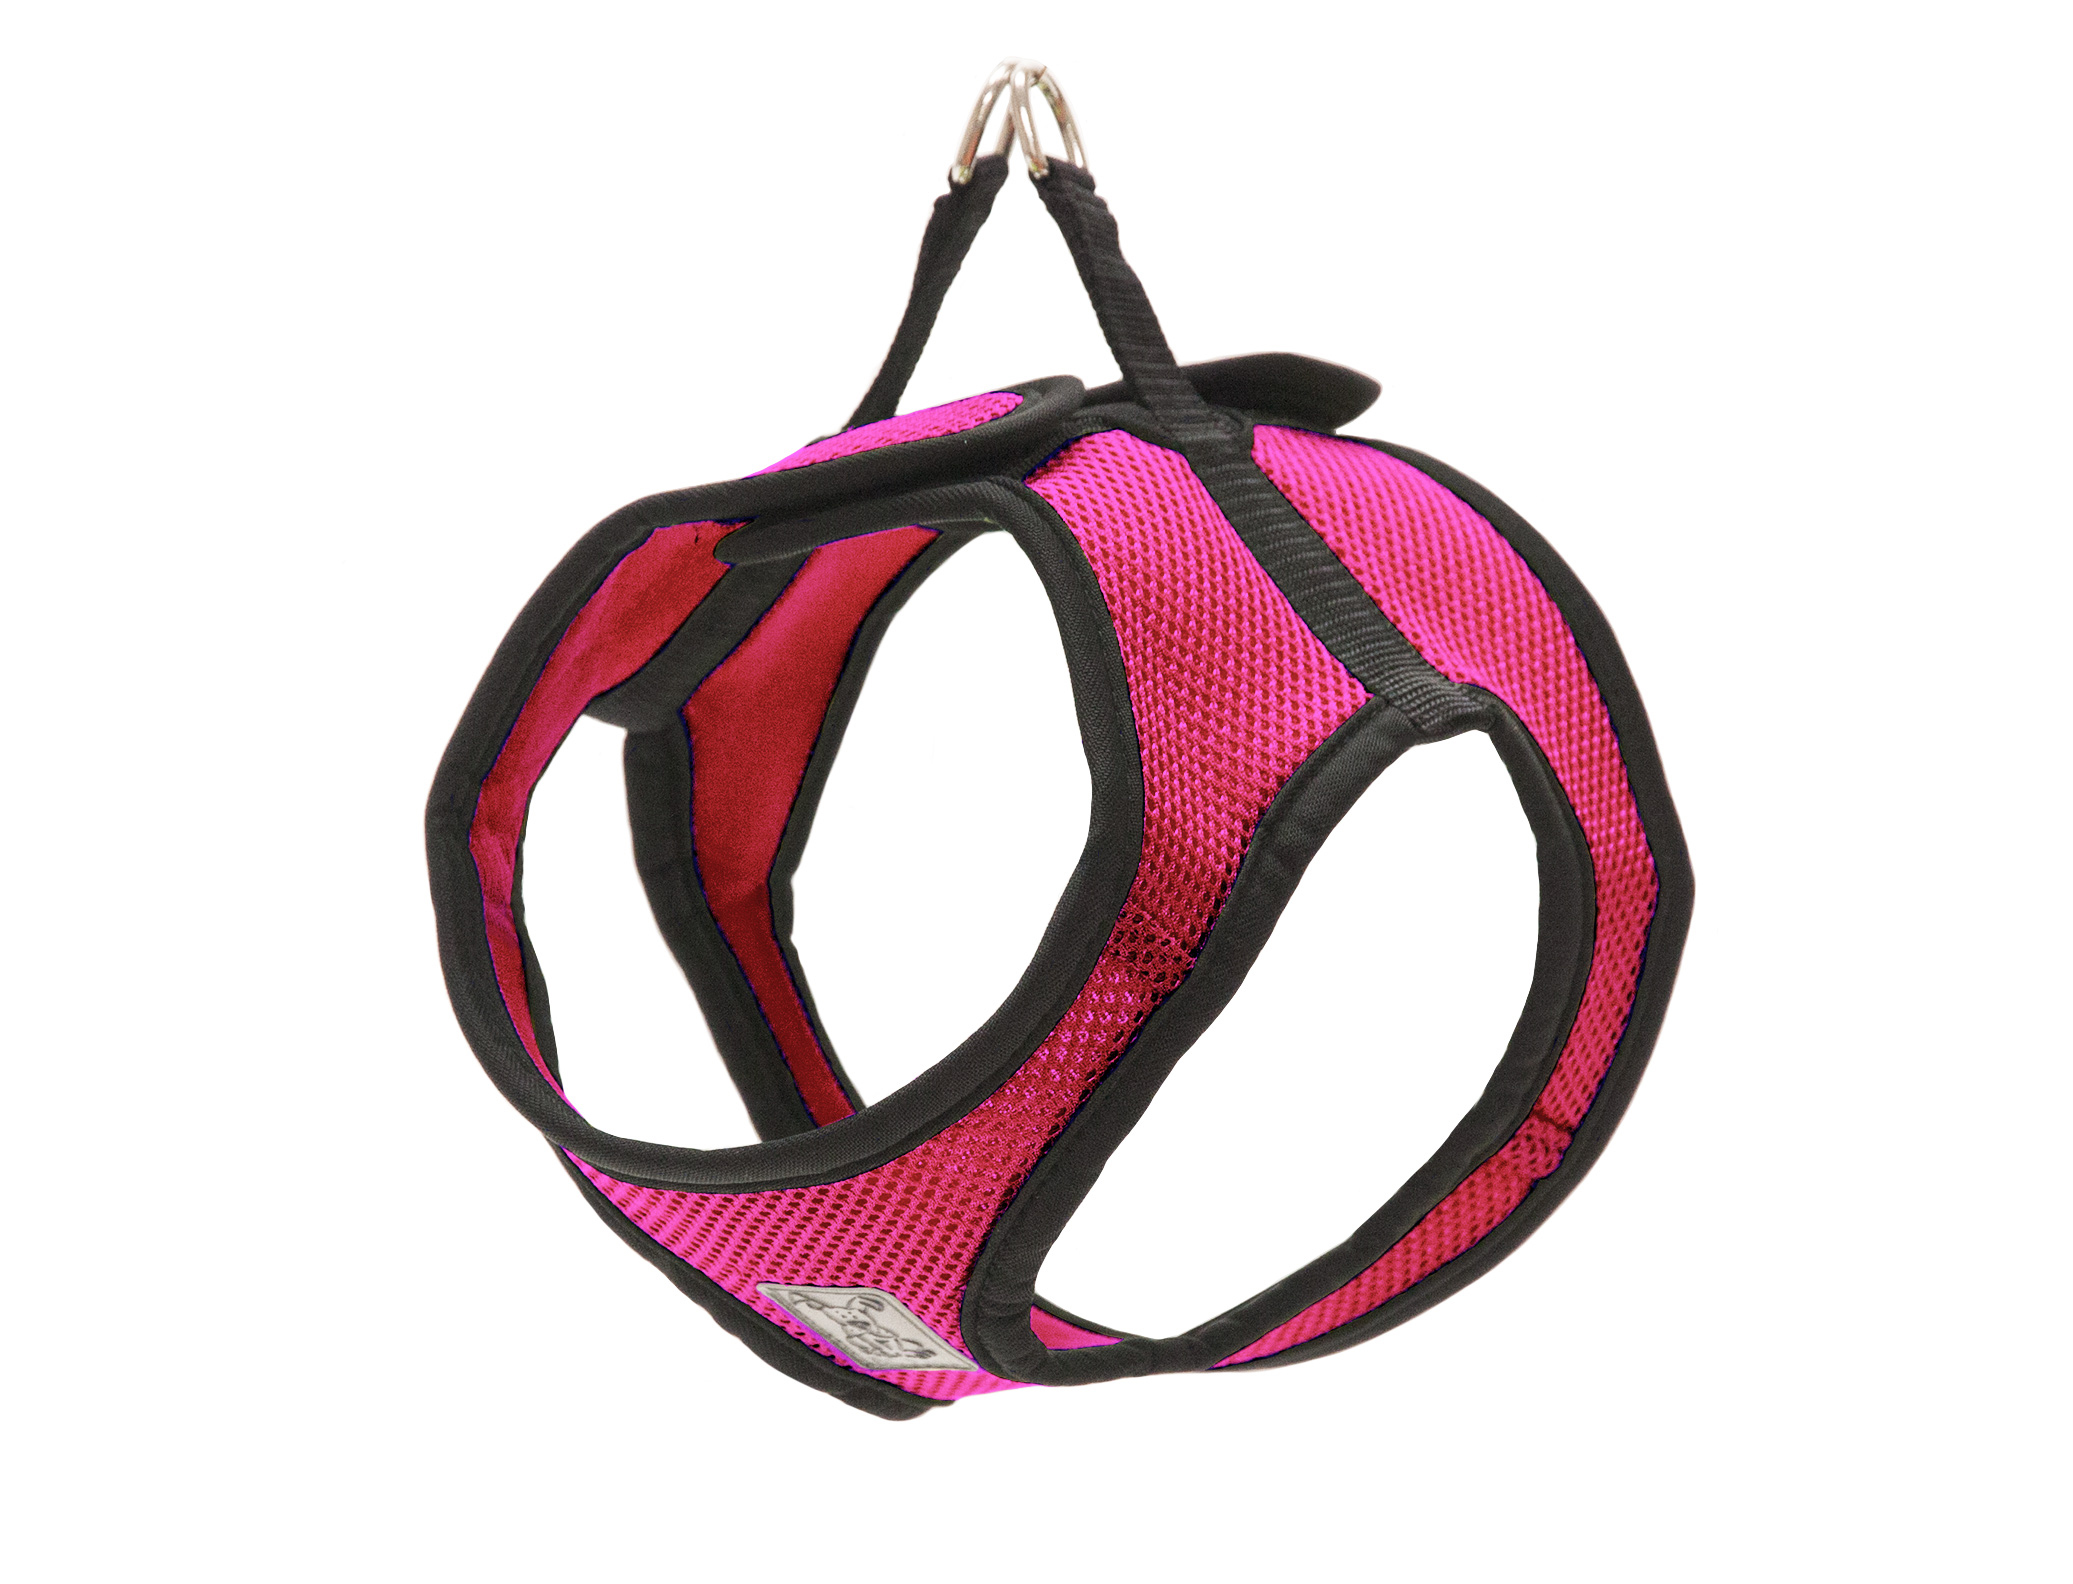 RC Pet ProductsStep-In Cirque Dog Harness, Raspberry, X-Small